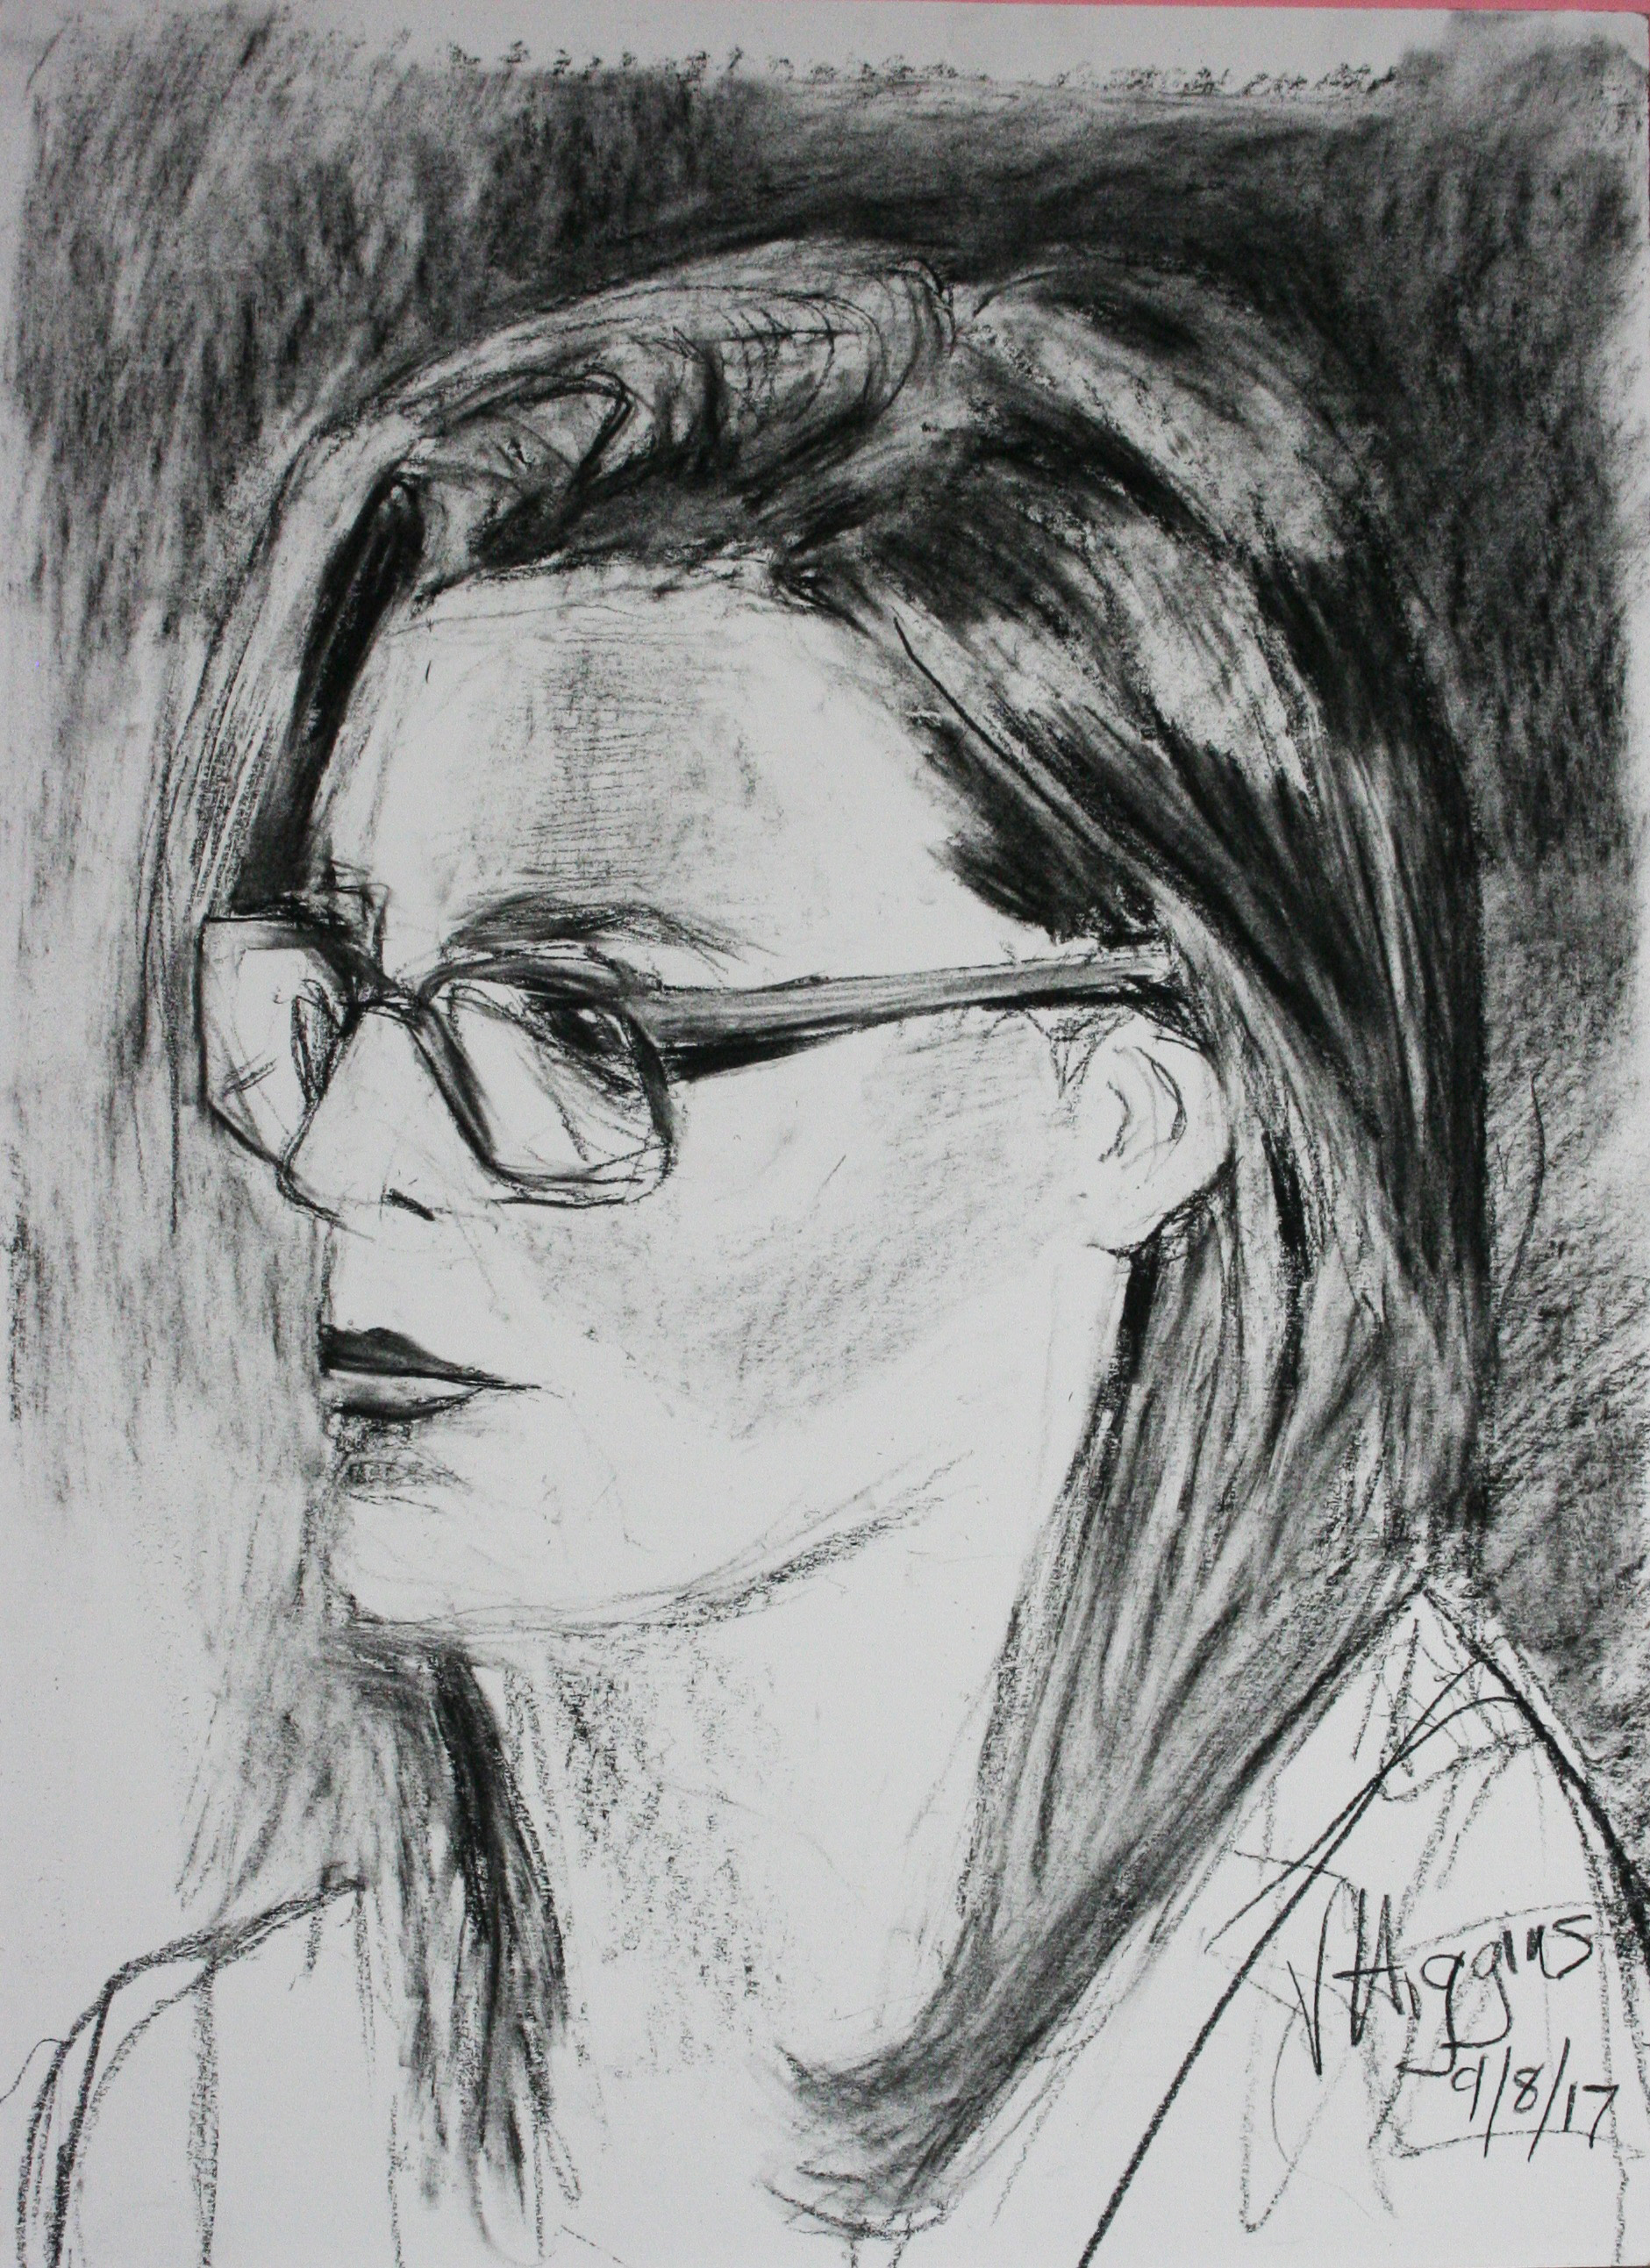 Victoria Higgins did this hour and a half drawing.